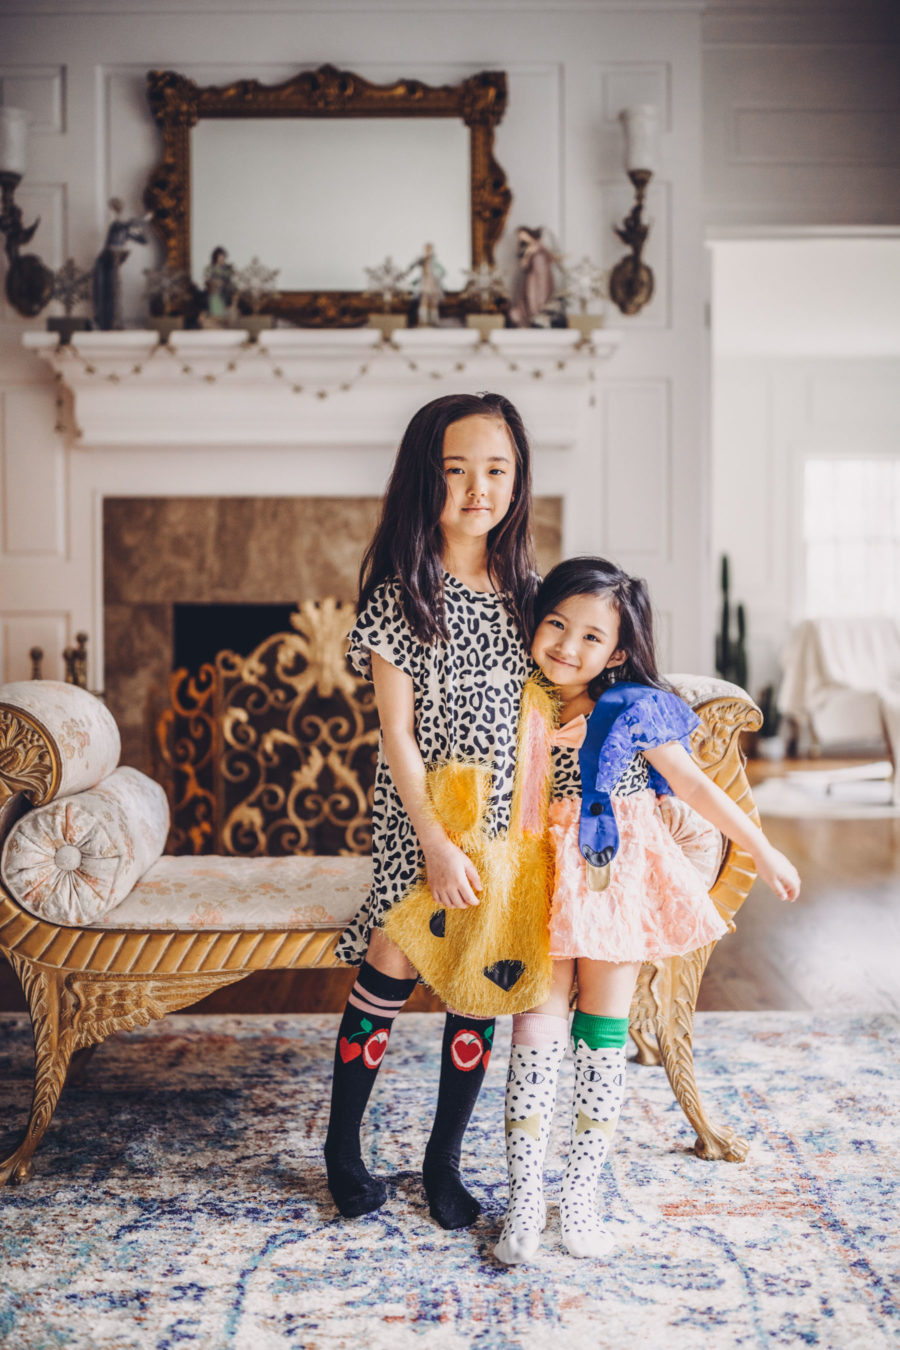 fun rainy day activities with kids, kids dress up, Wauw Capow Kids Wear, stylish kids fashion, jessica wang kids // Notjessfashion.com